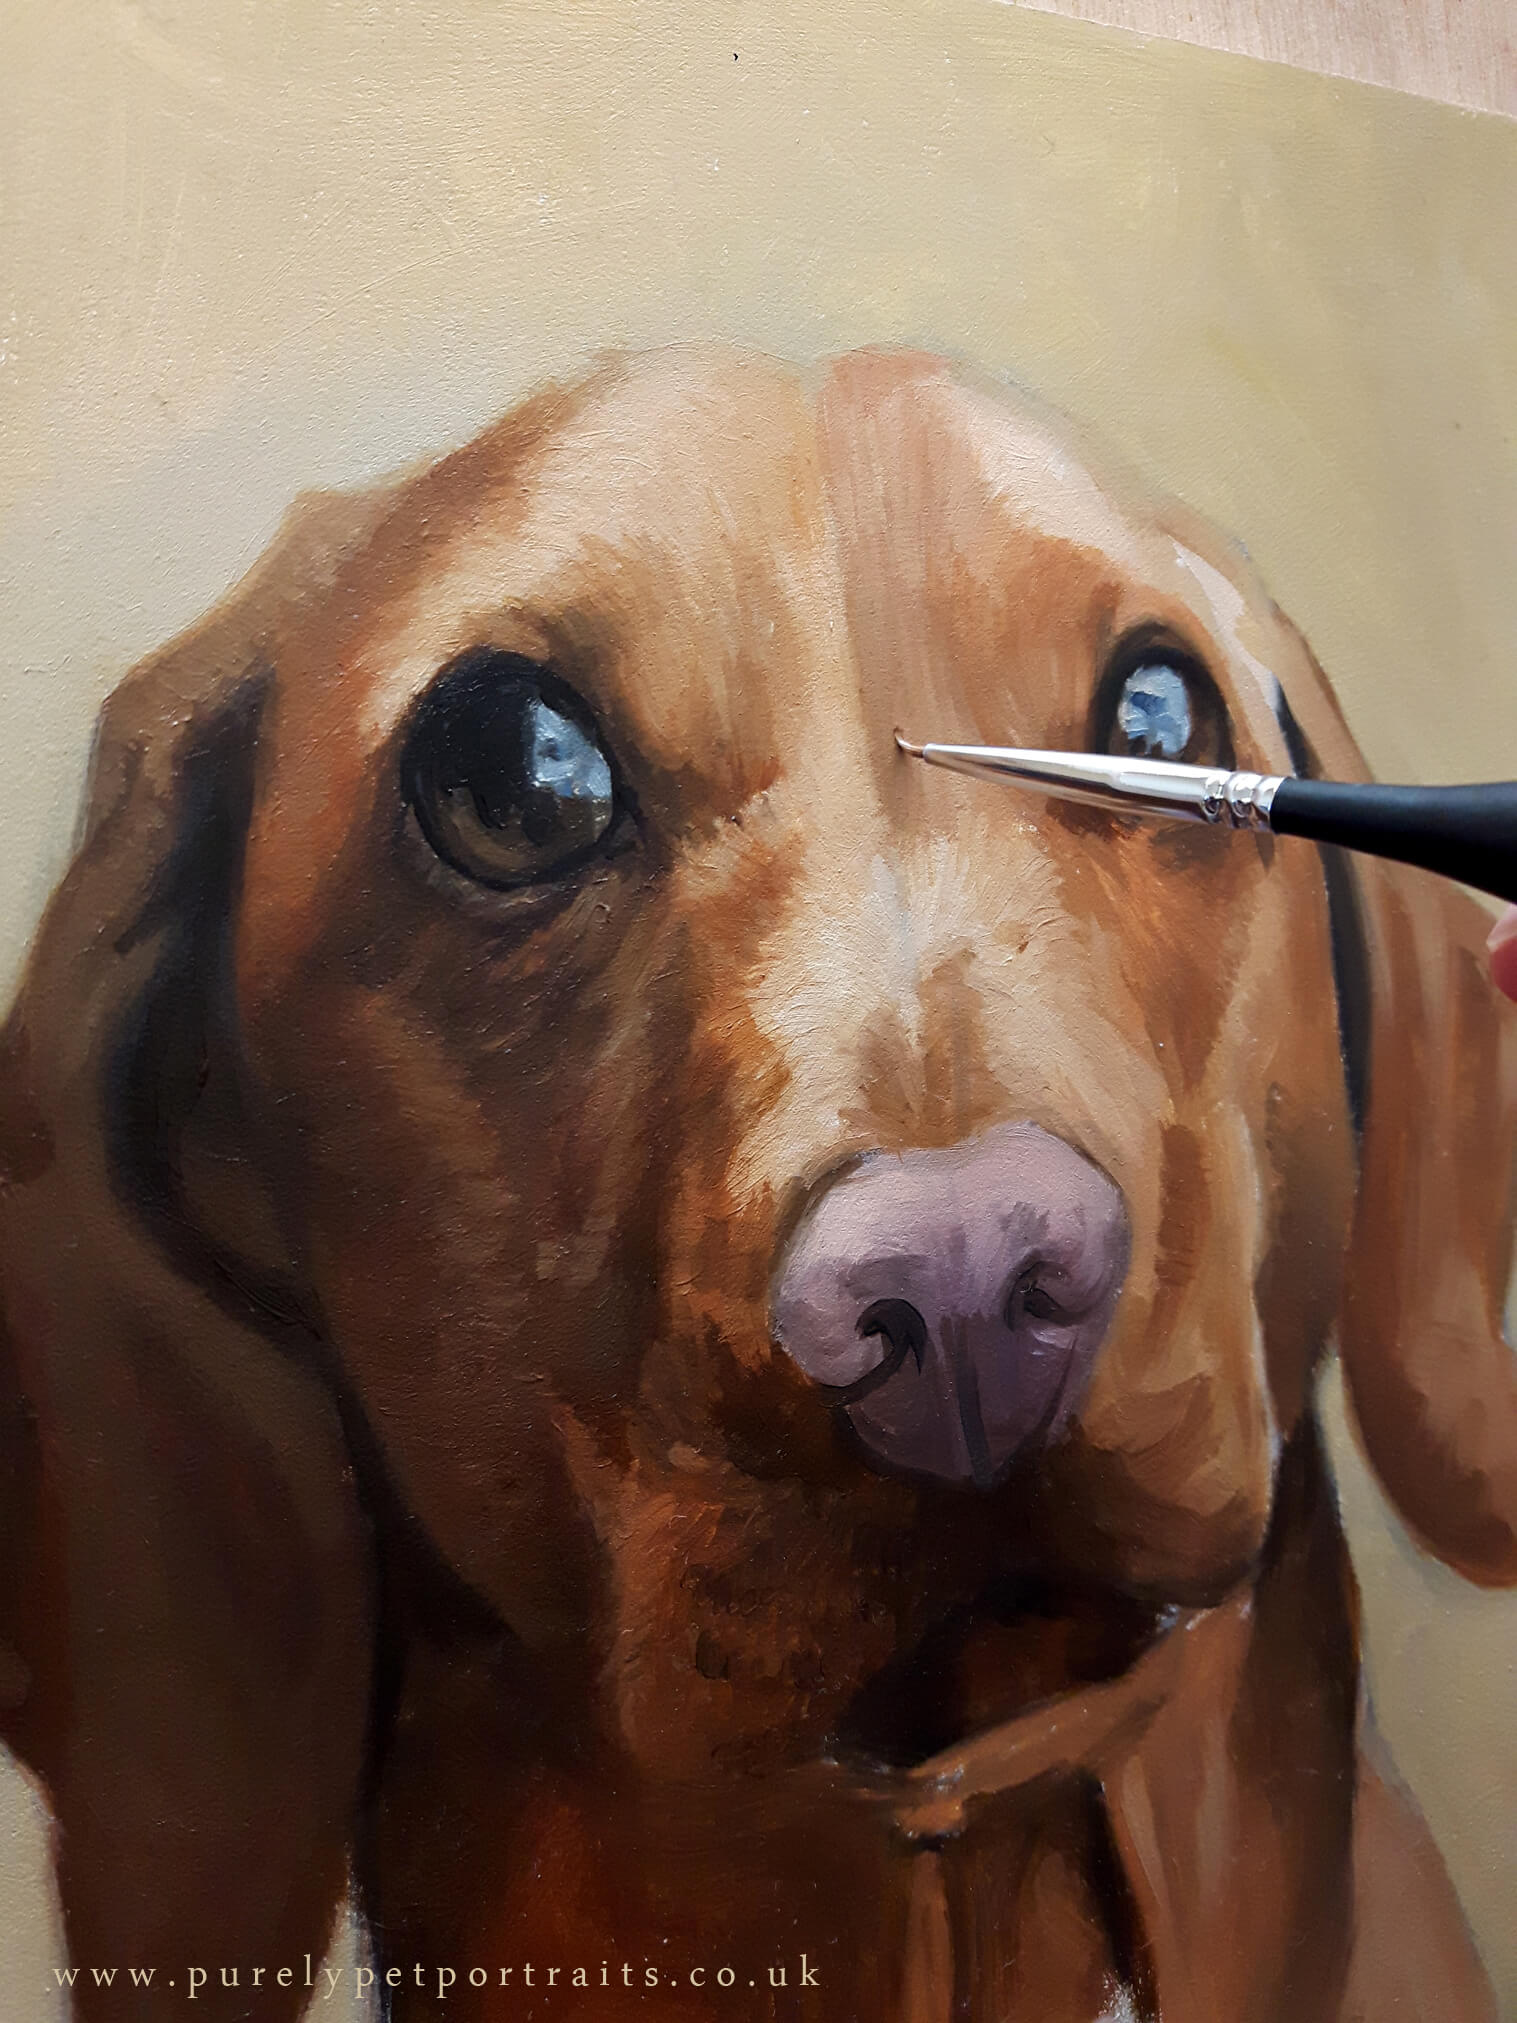 POrtrait of Barnaby by www.purelypetportraits.co.uk